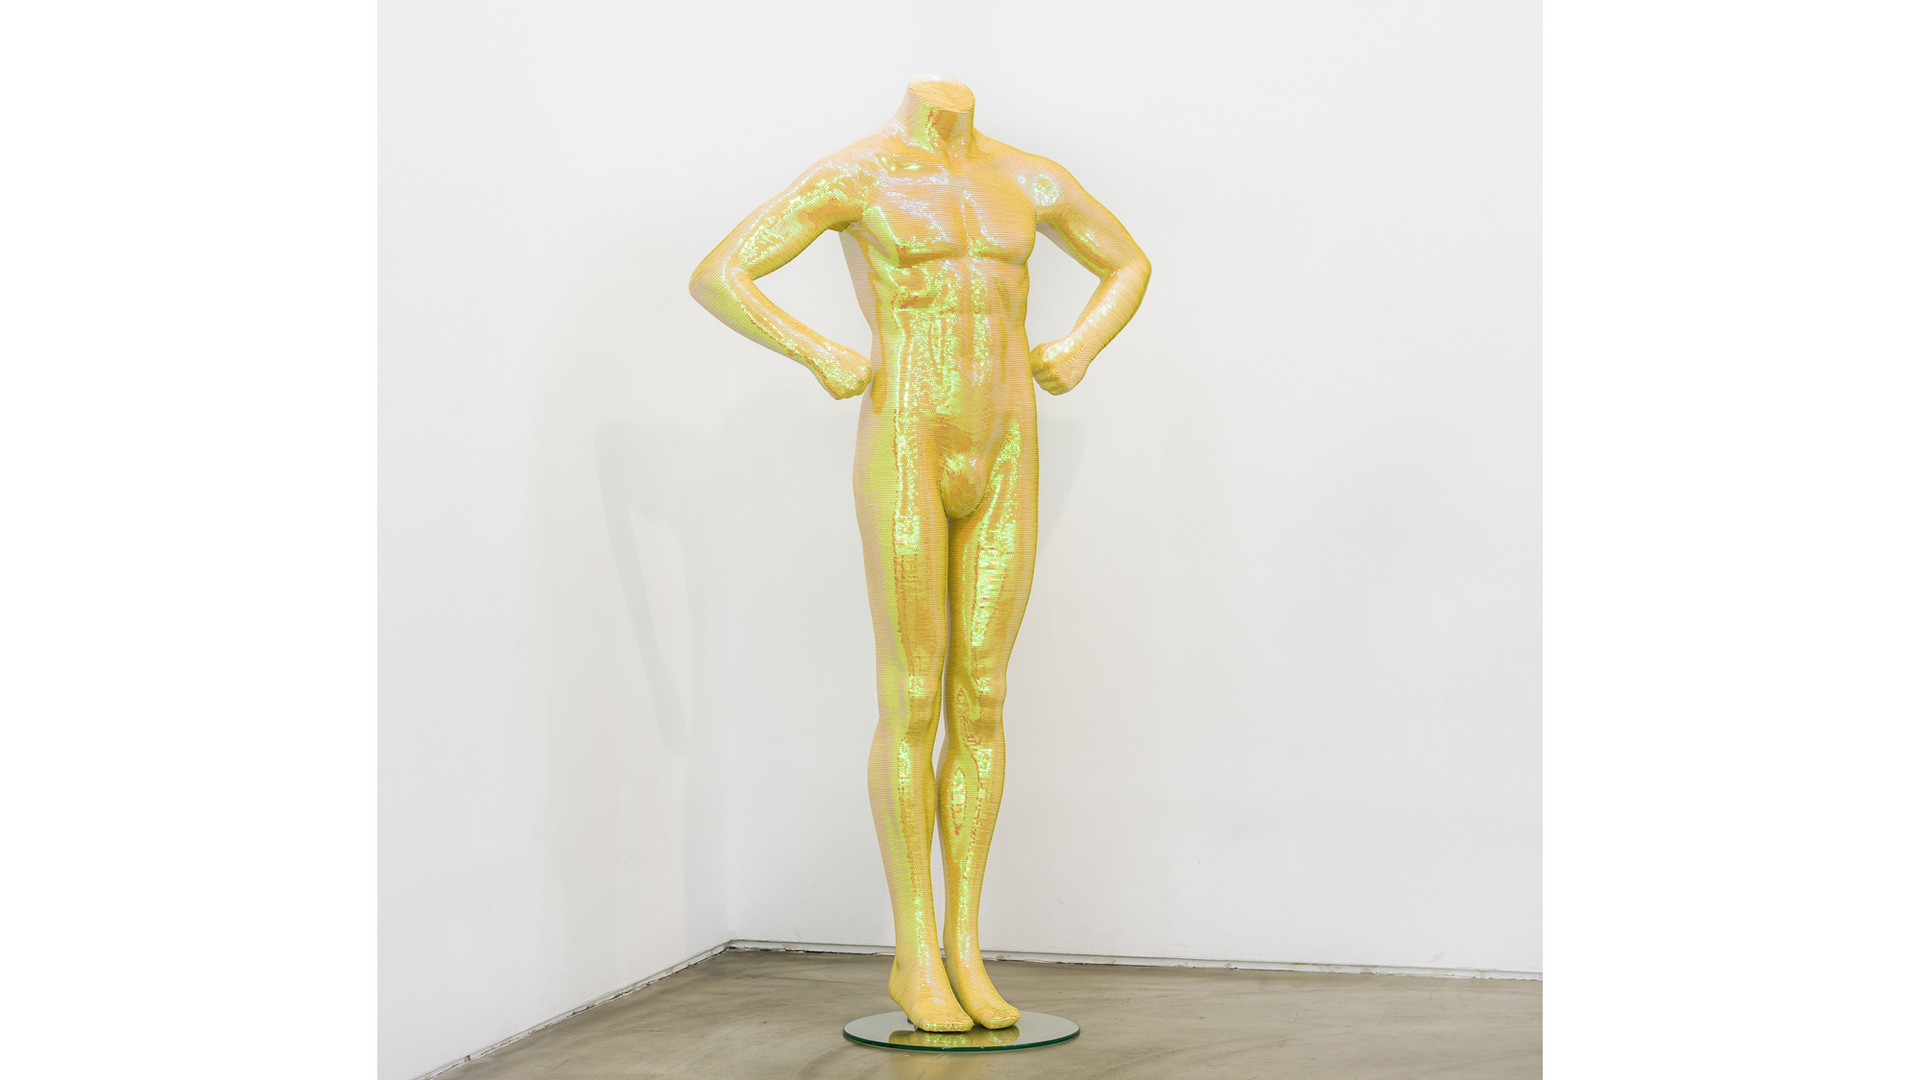 Noh, Sang-Kyoon, What Are You Looking For - Standing Man, 2007, sequins on mannequin of polyester resin, fiberglass, 170 x 85 x 30 cm